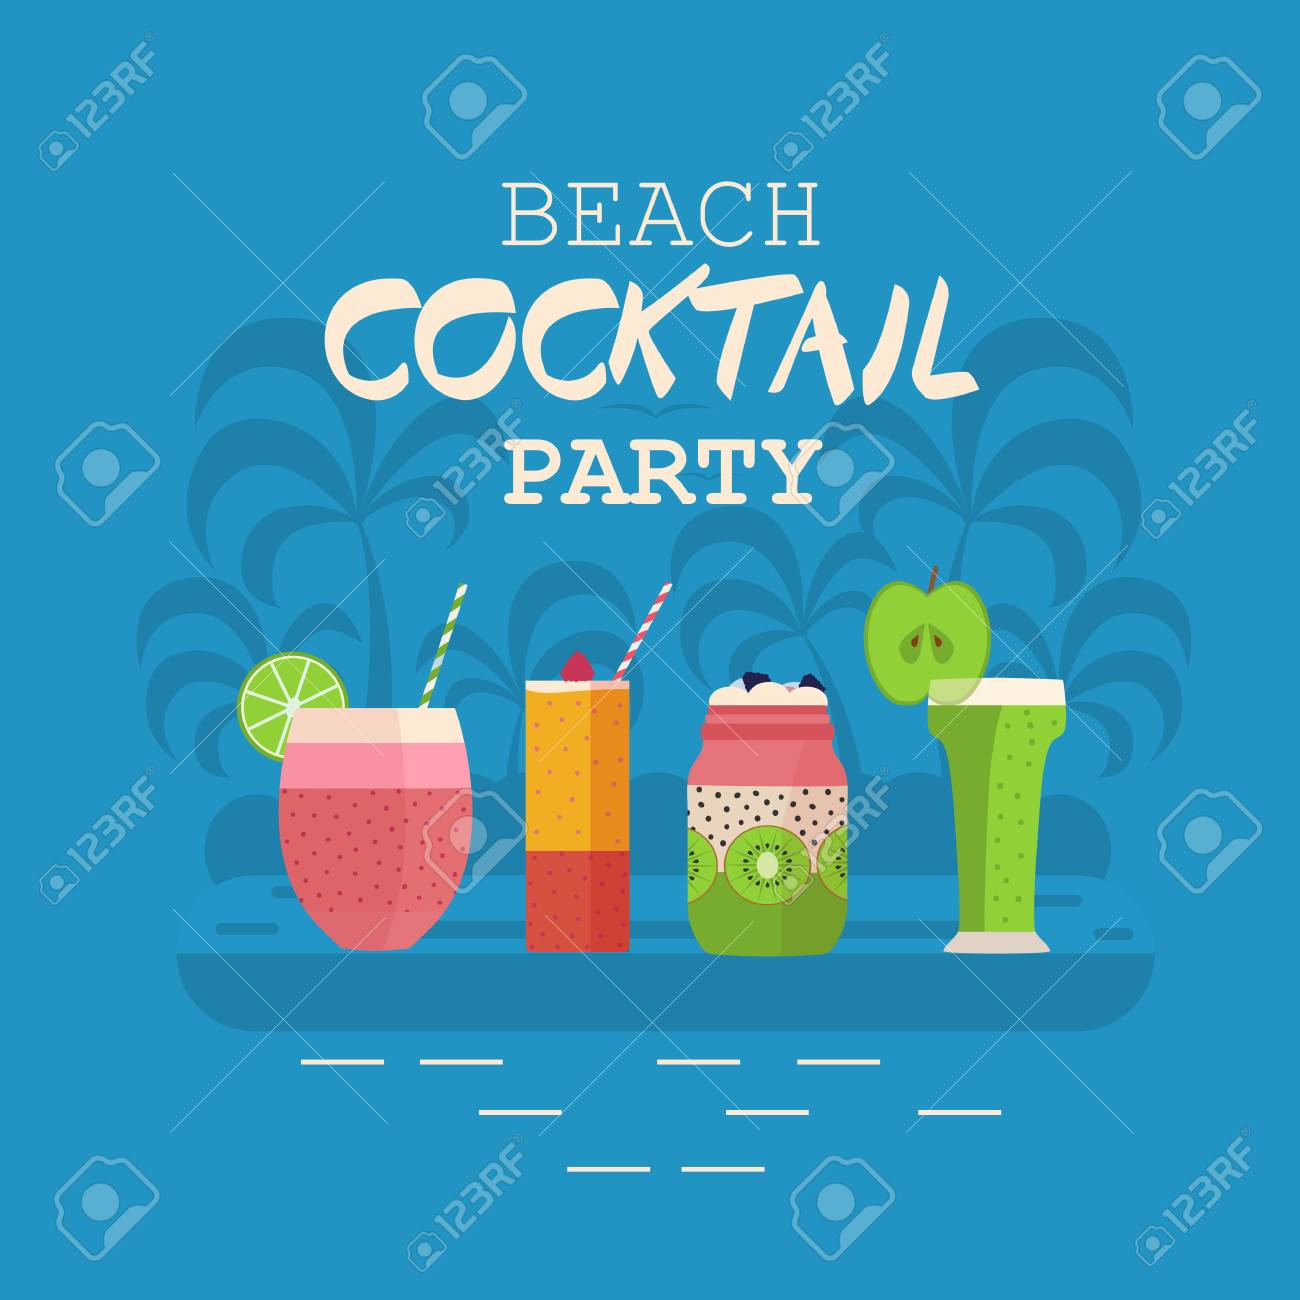 Beach Cocktail Party Invitation Card Or Poster With Smoothies